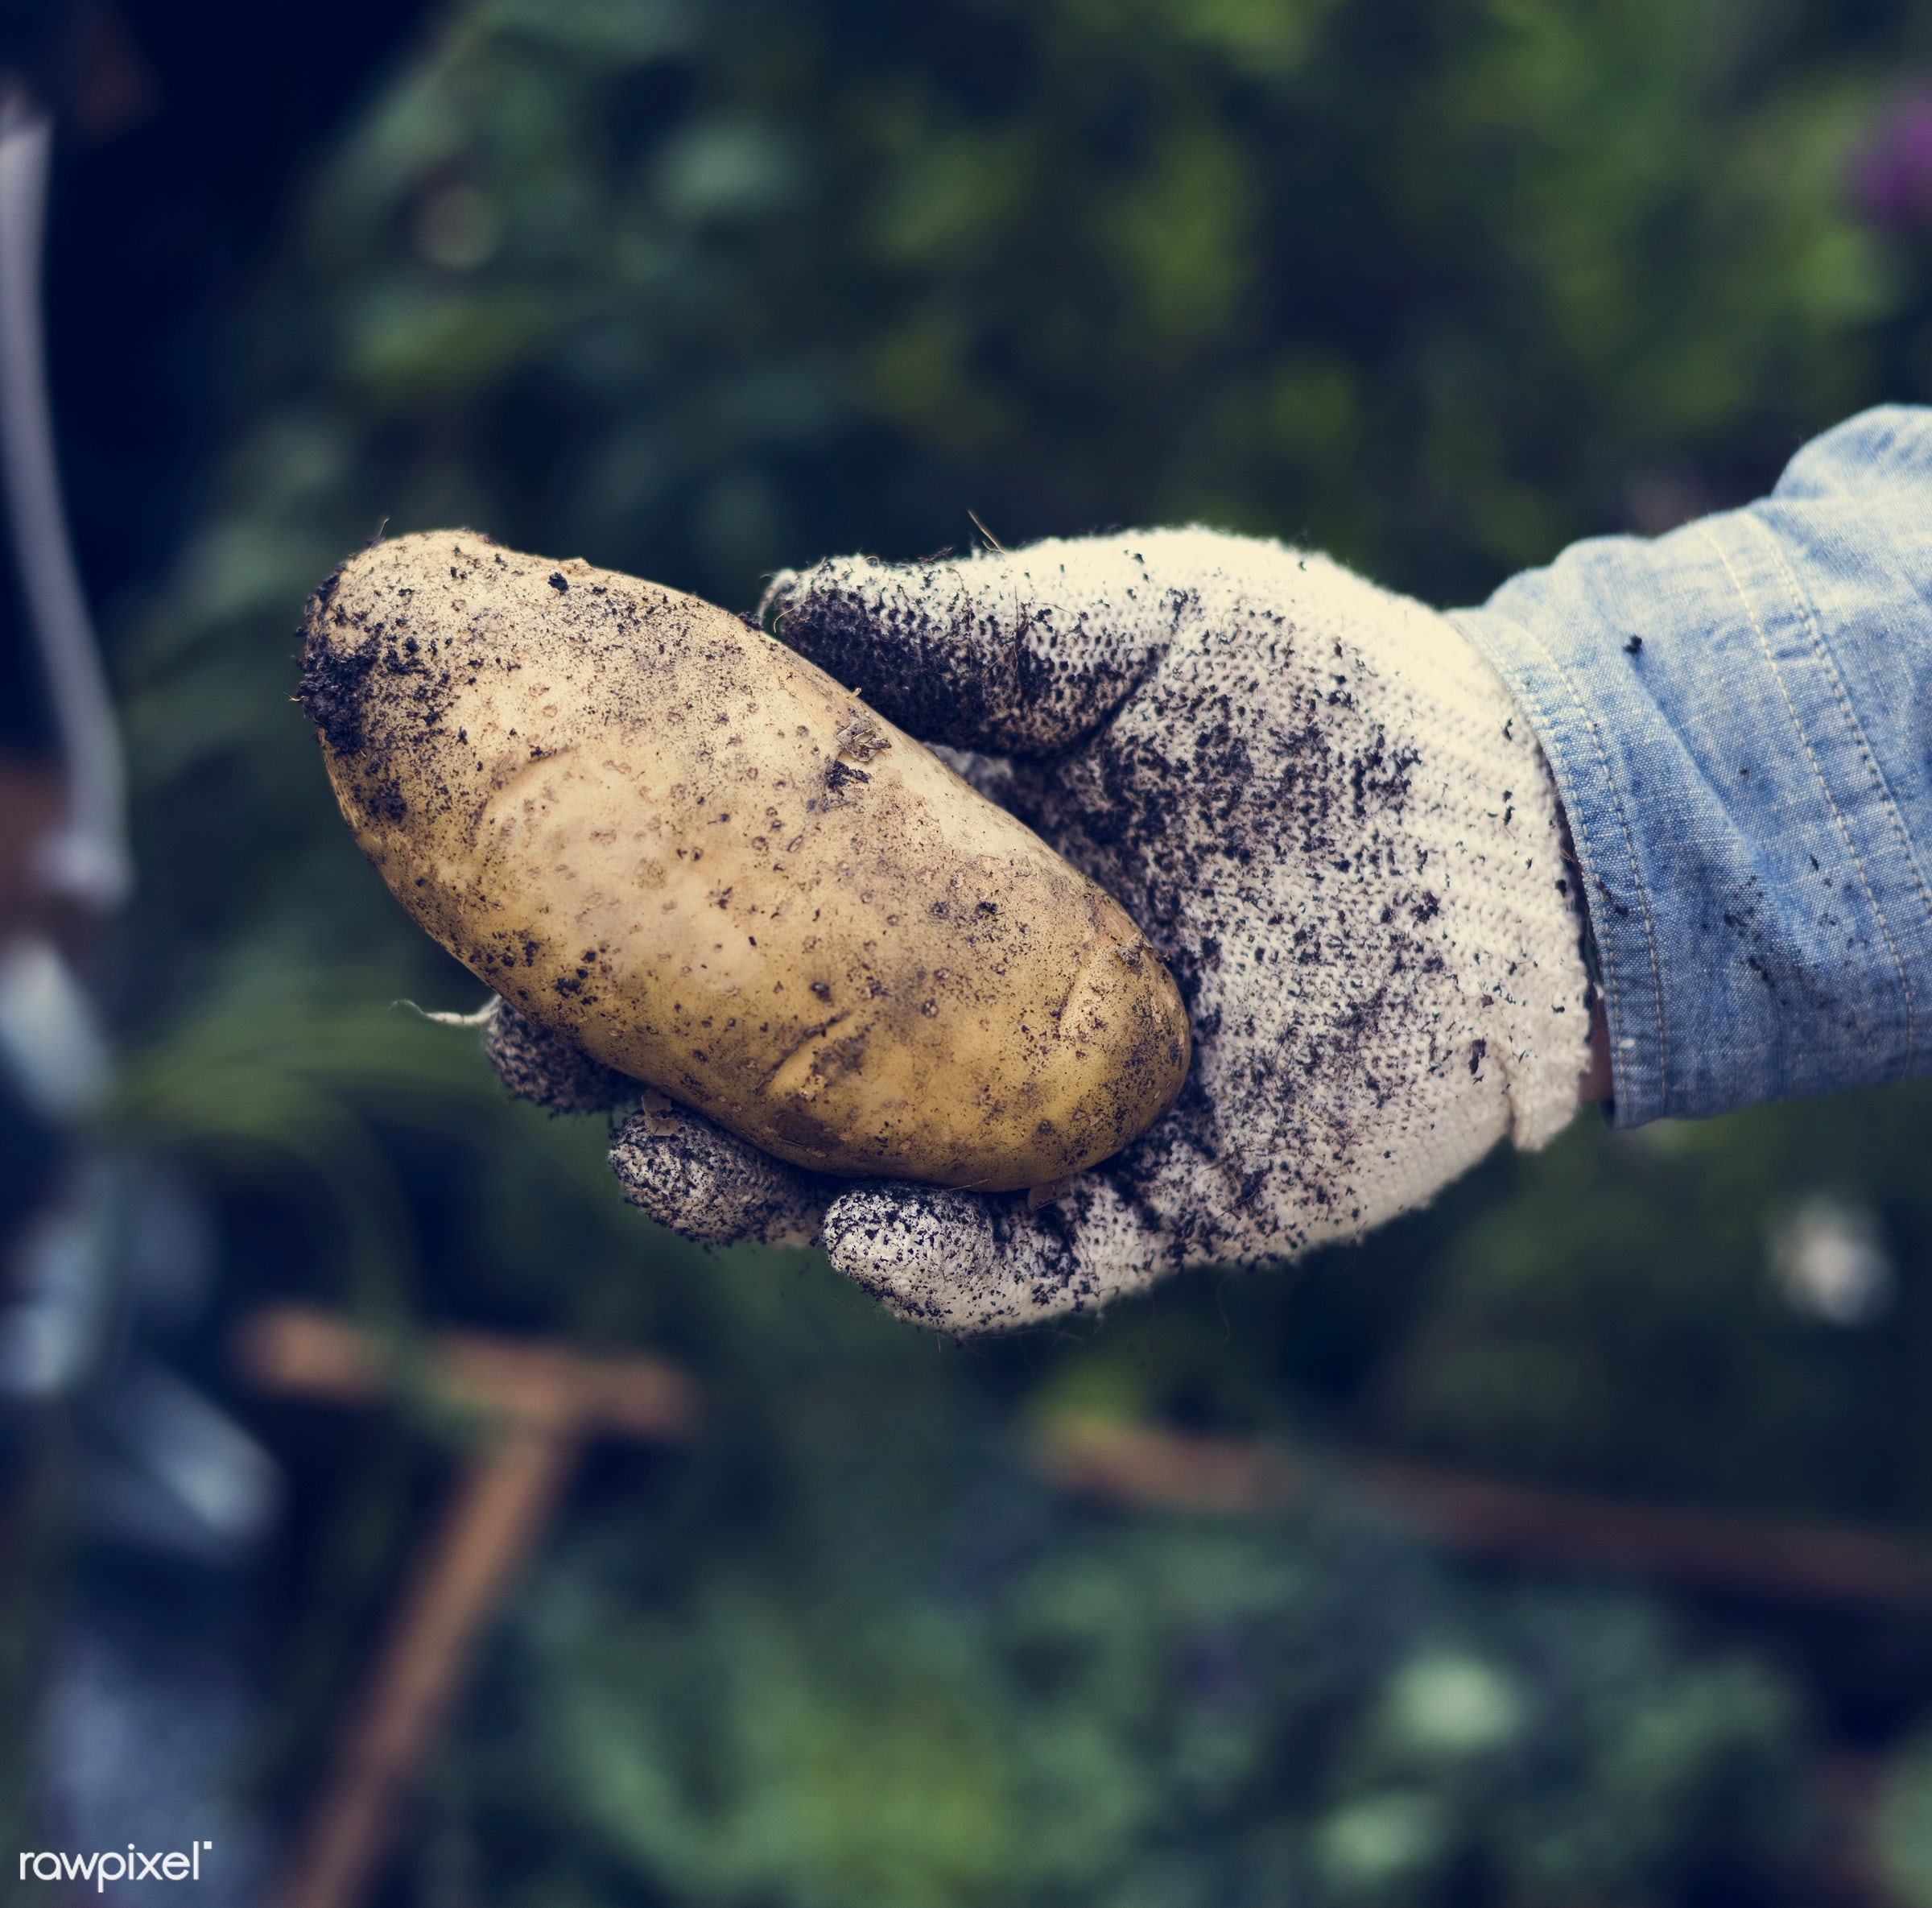 person, holding, show, people, crop, farmer, nature, cultivation, ingredient, dirt, hold, agriculture, present, nutrition,...